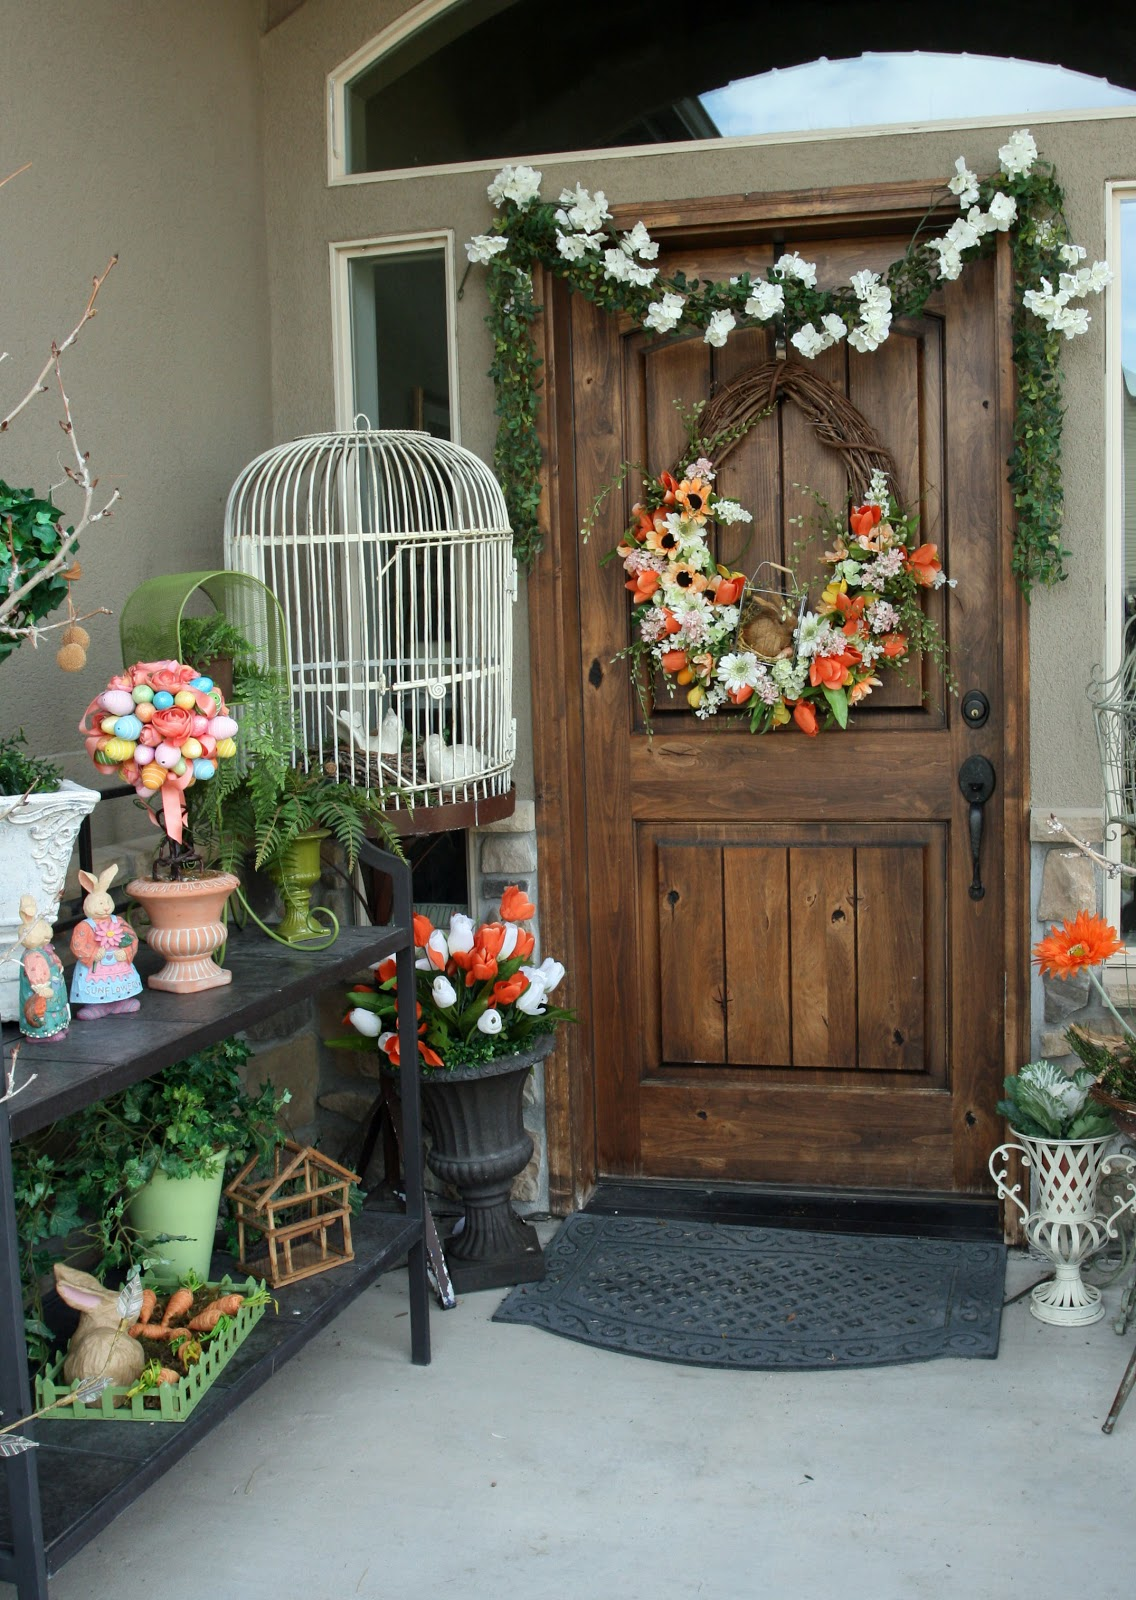 Adventures of a BusyBee Spring Porch Spring Decor Decorating Series Part 3